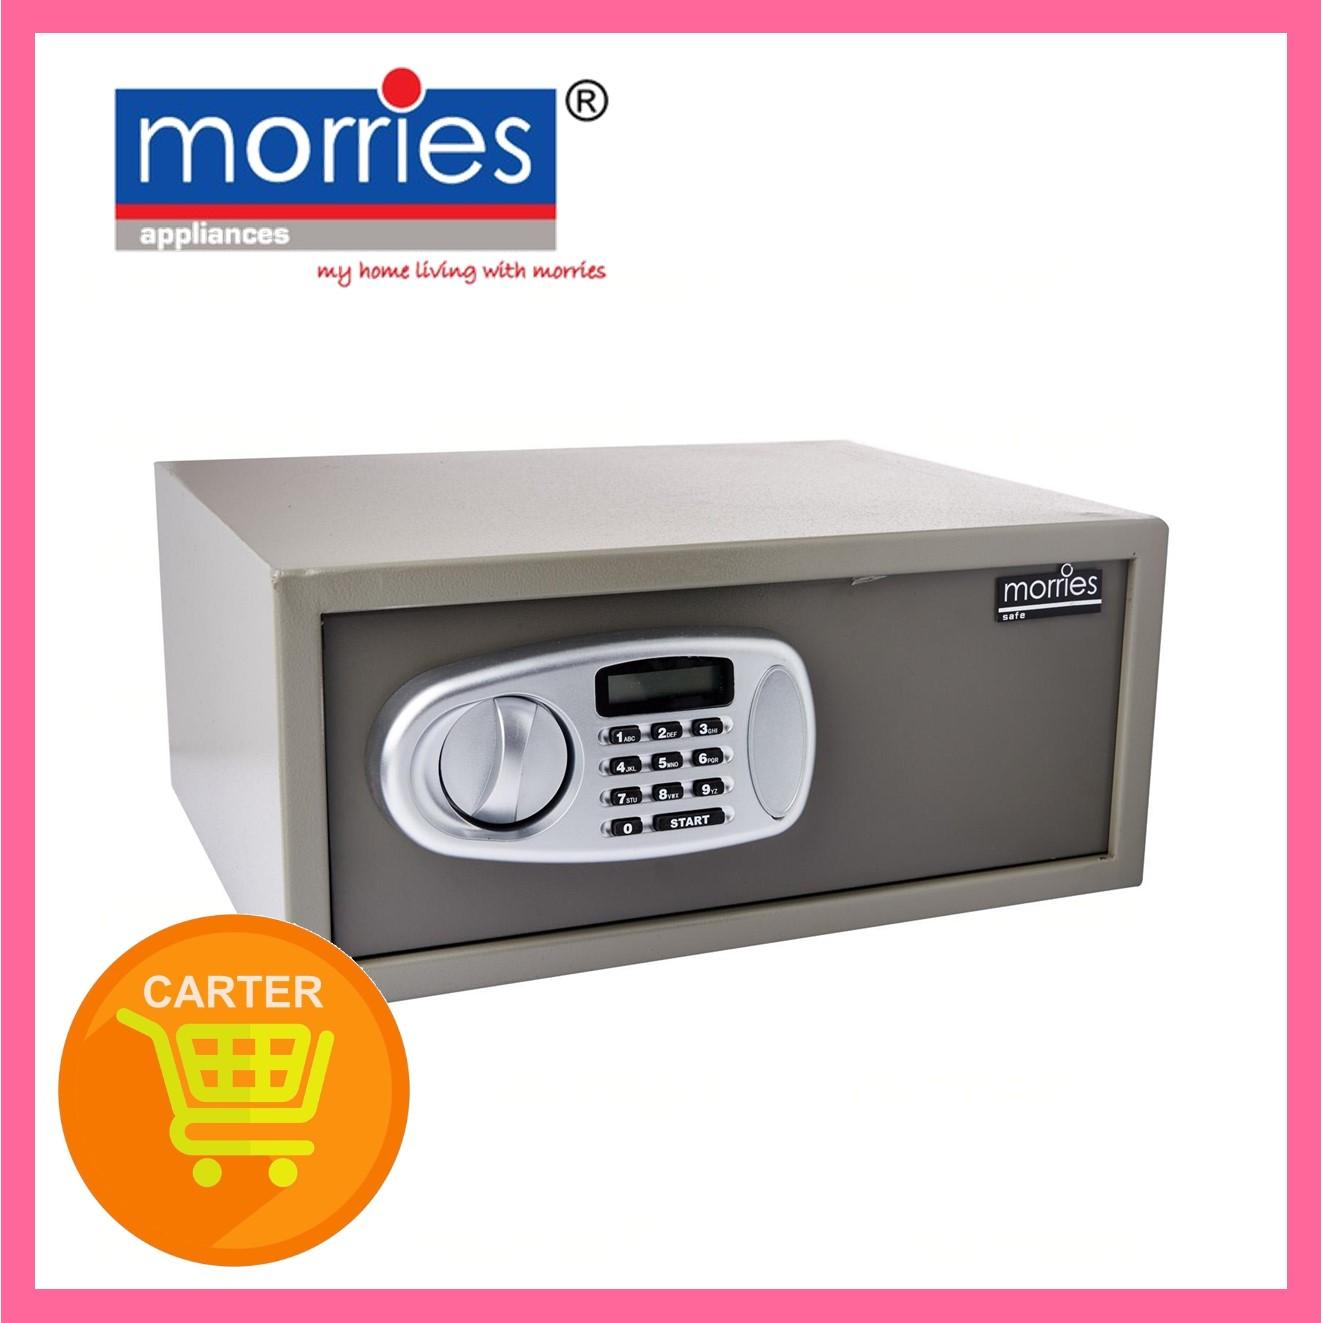 Lowest Price - Morries Electronic Safe MS45DW 14kg (Light grey)